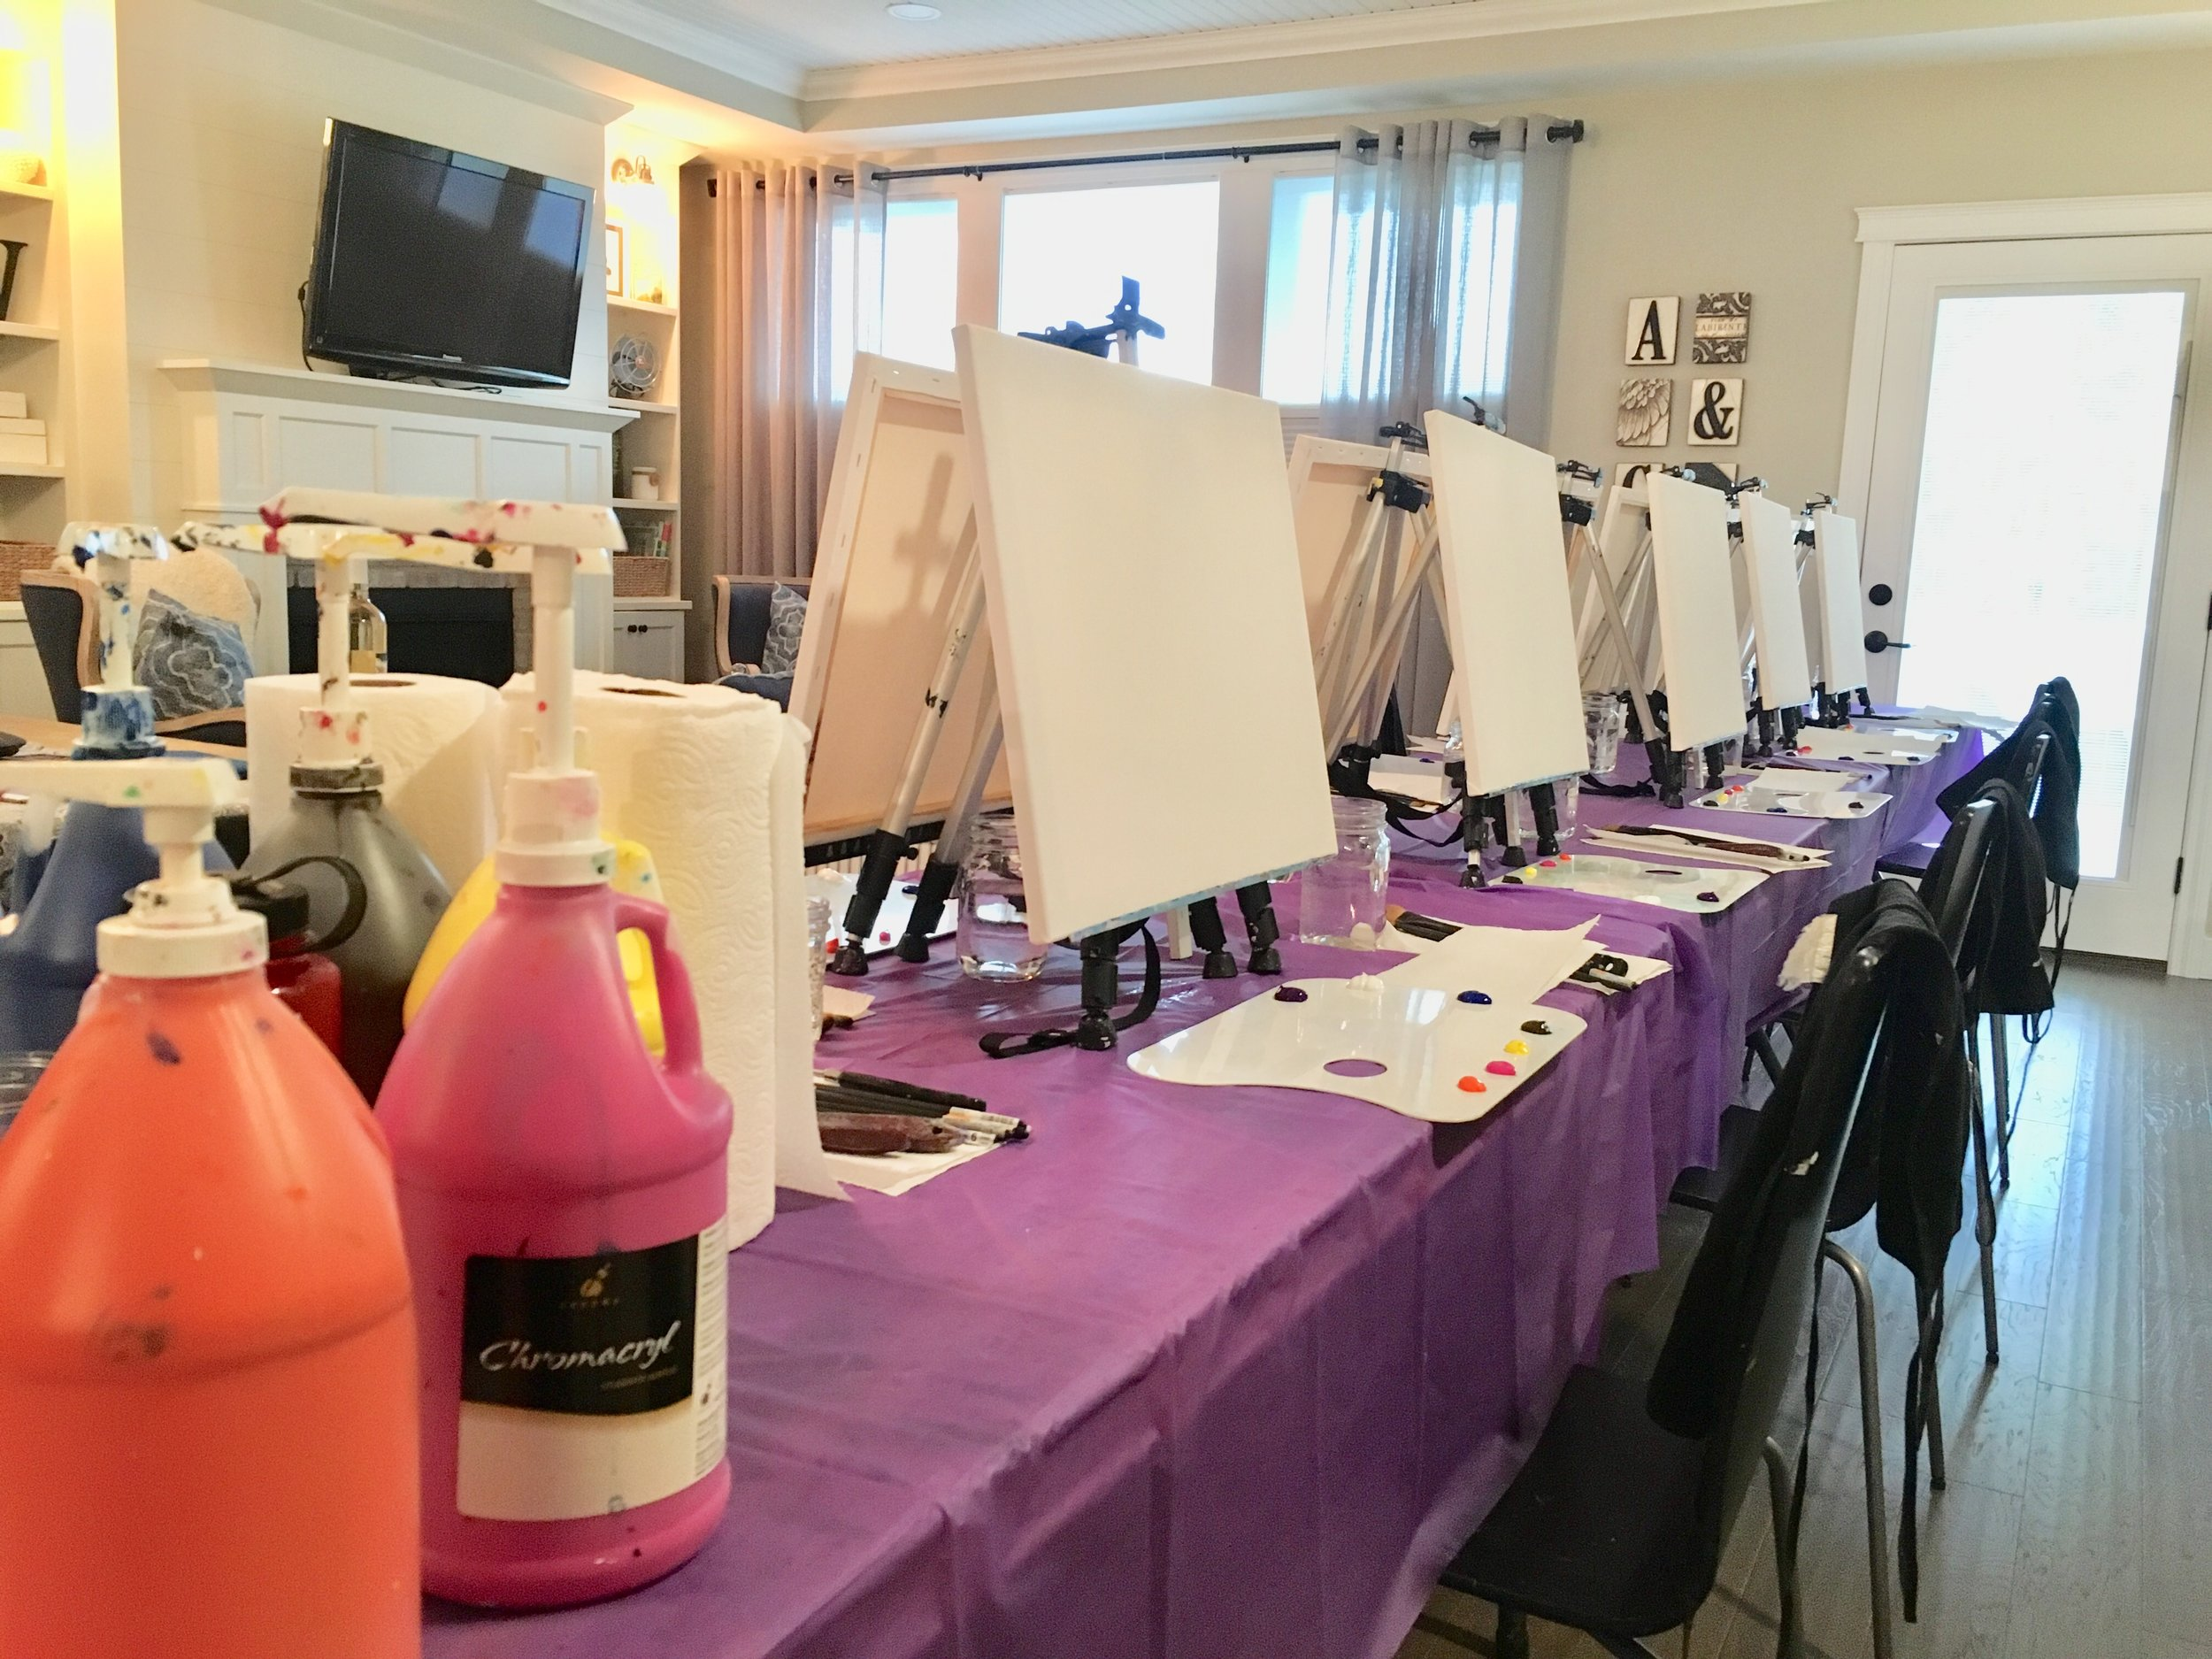 MOBILE PAINTING PARTIESIN THE SHUSWAP - We bring the painting party to you with our mobile option. Our mobile units are optimized to transport everything you need for a painting event to your location.